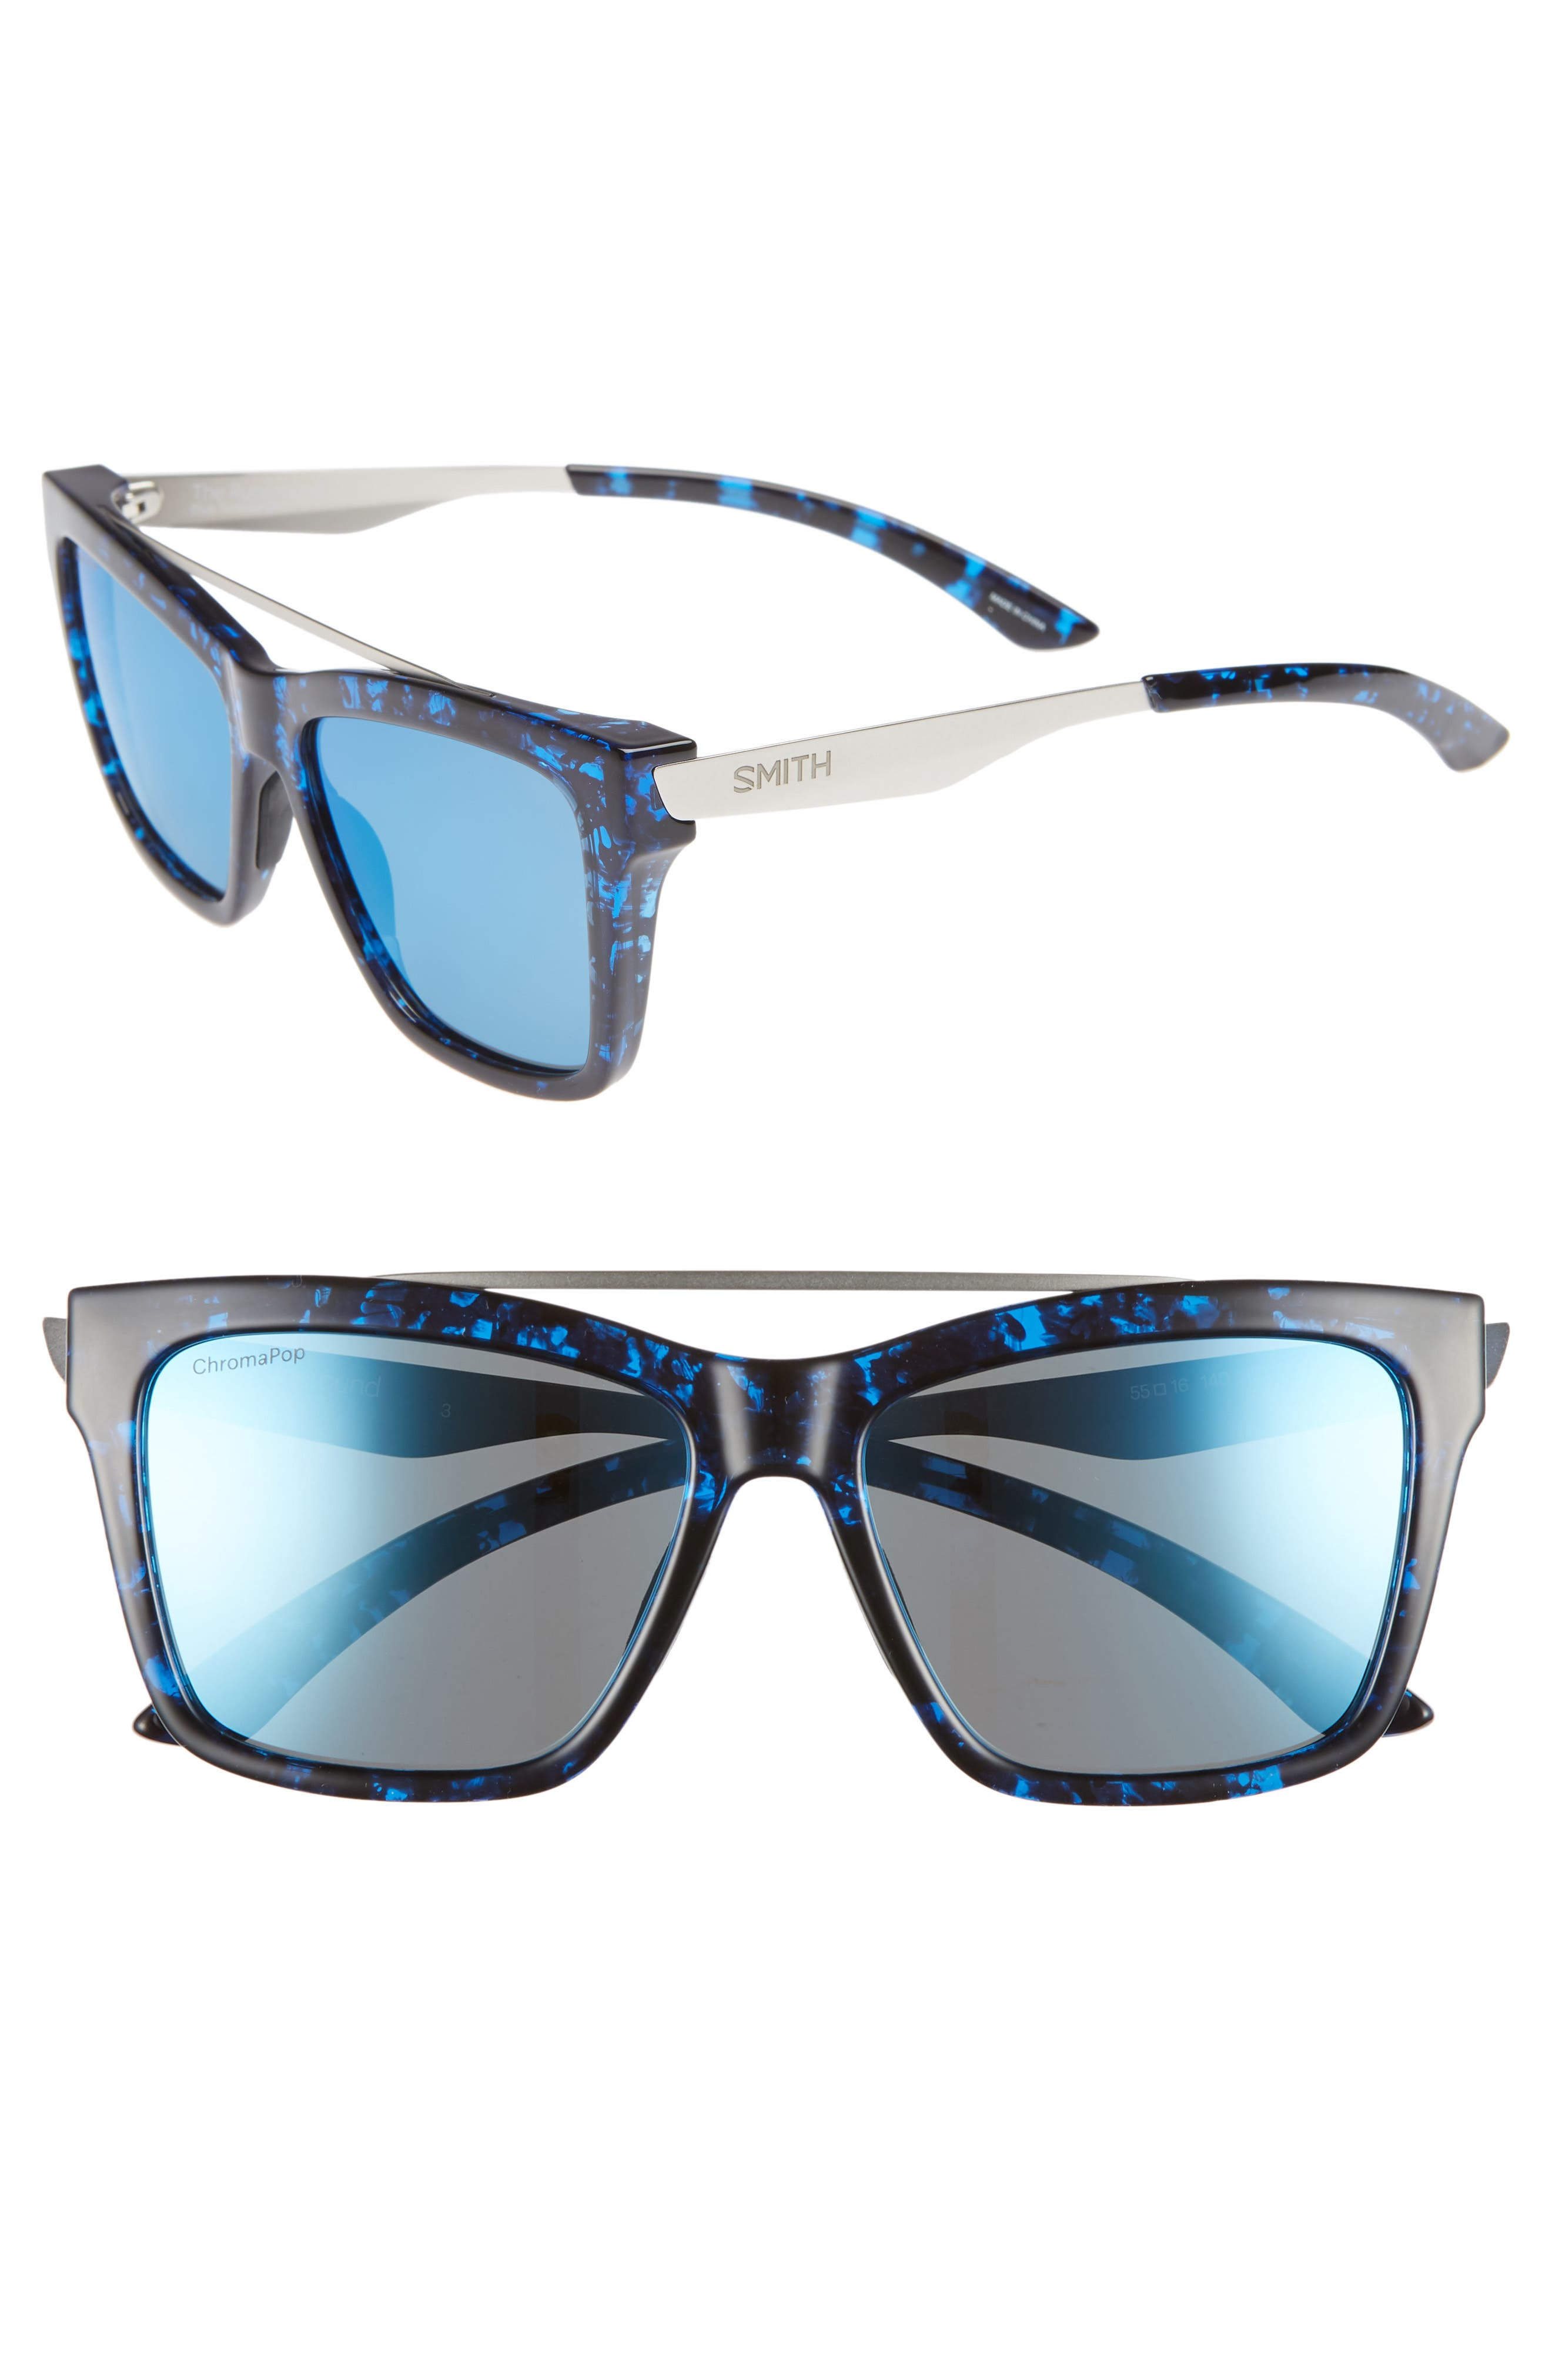 SMITH THE RUNAROUND 55MM CHROMAPOP(TM) POLARIZED SUNGLASSES - BLUE TORTOISE